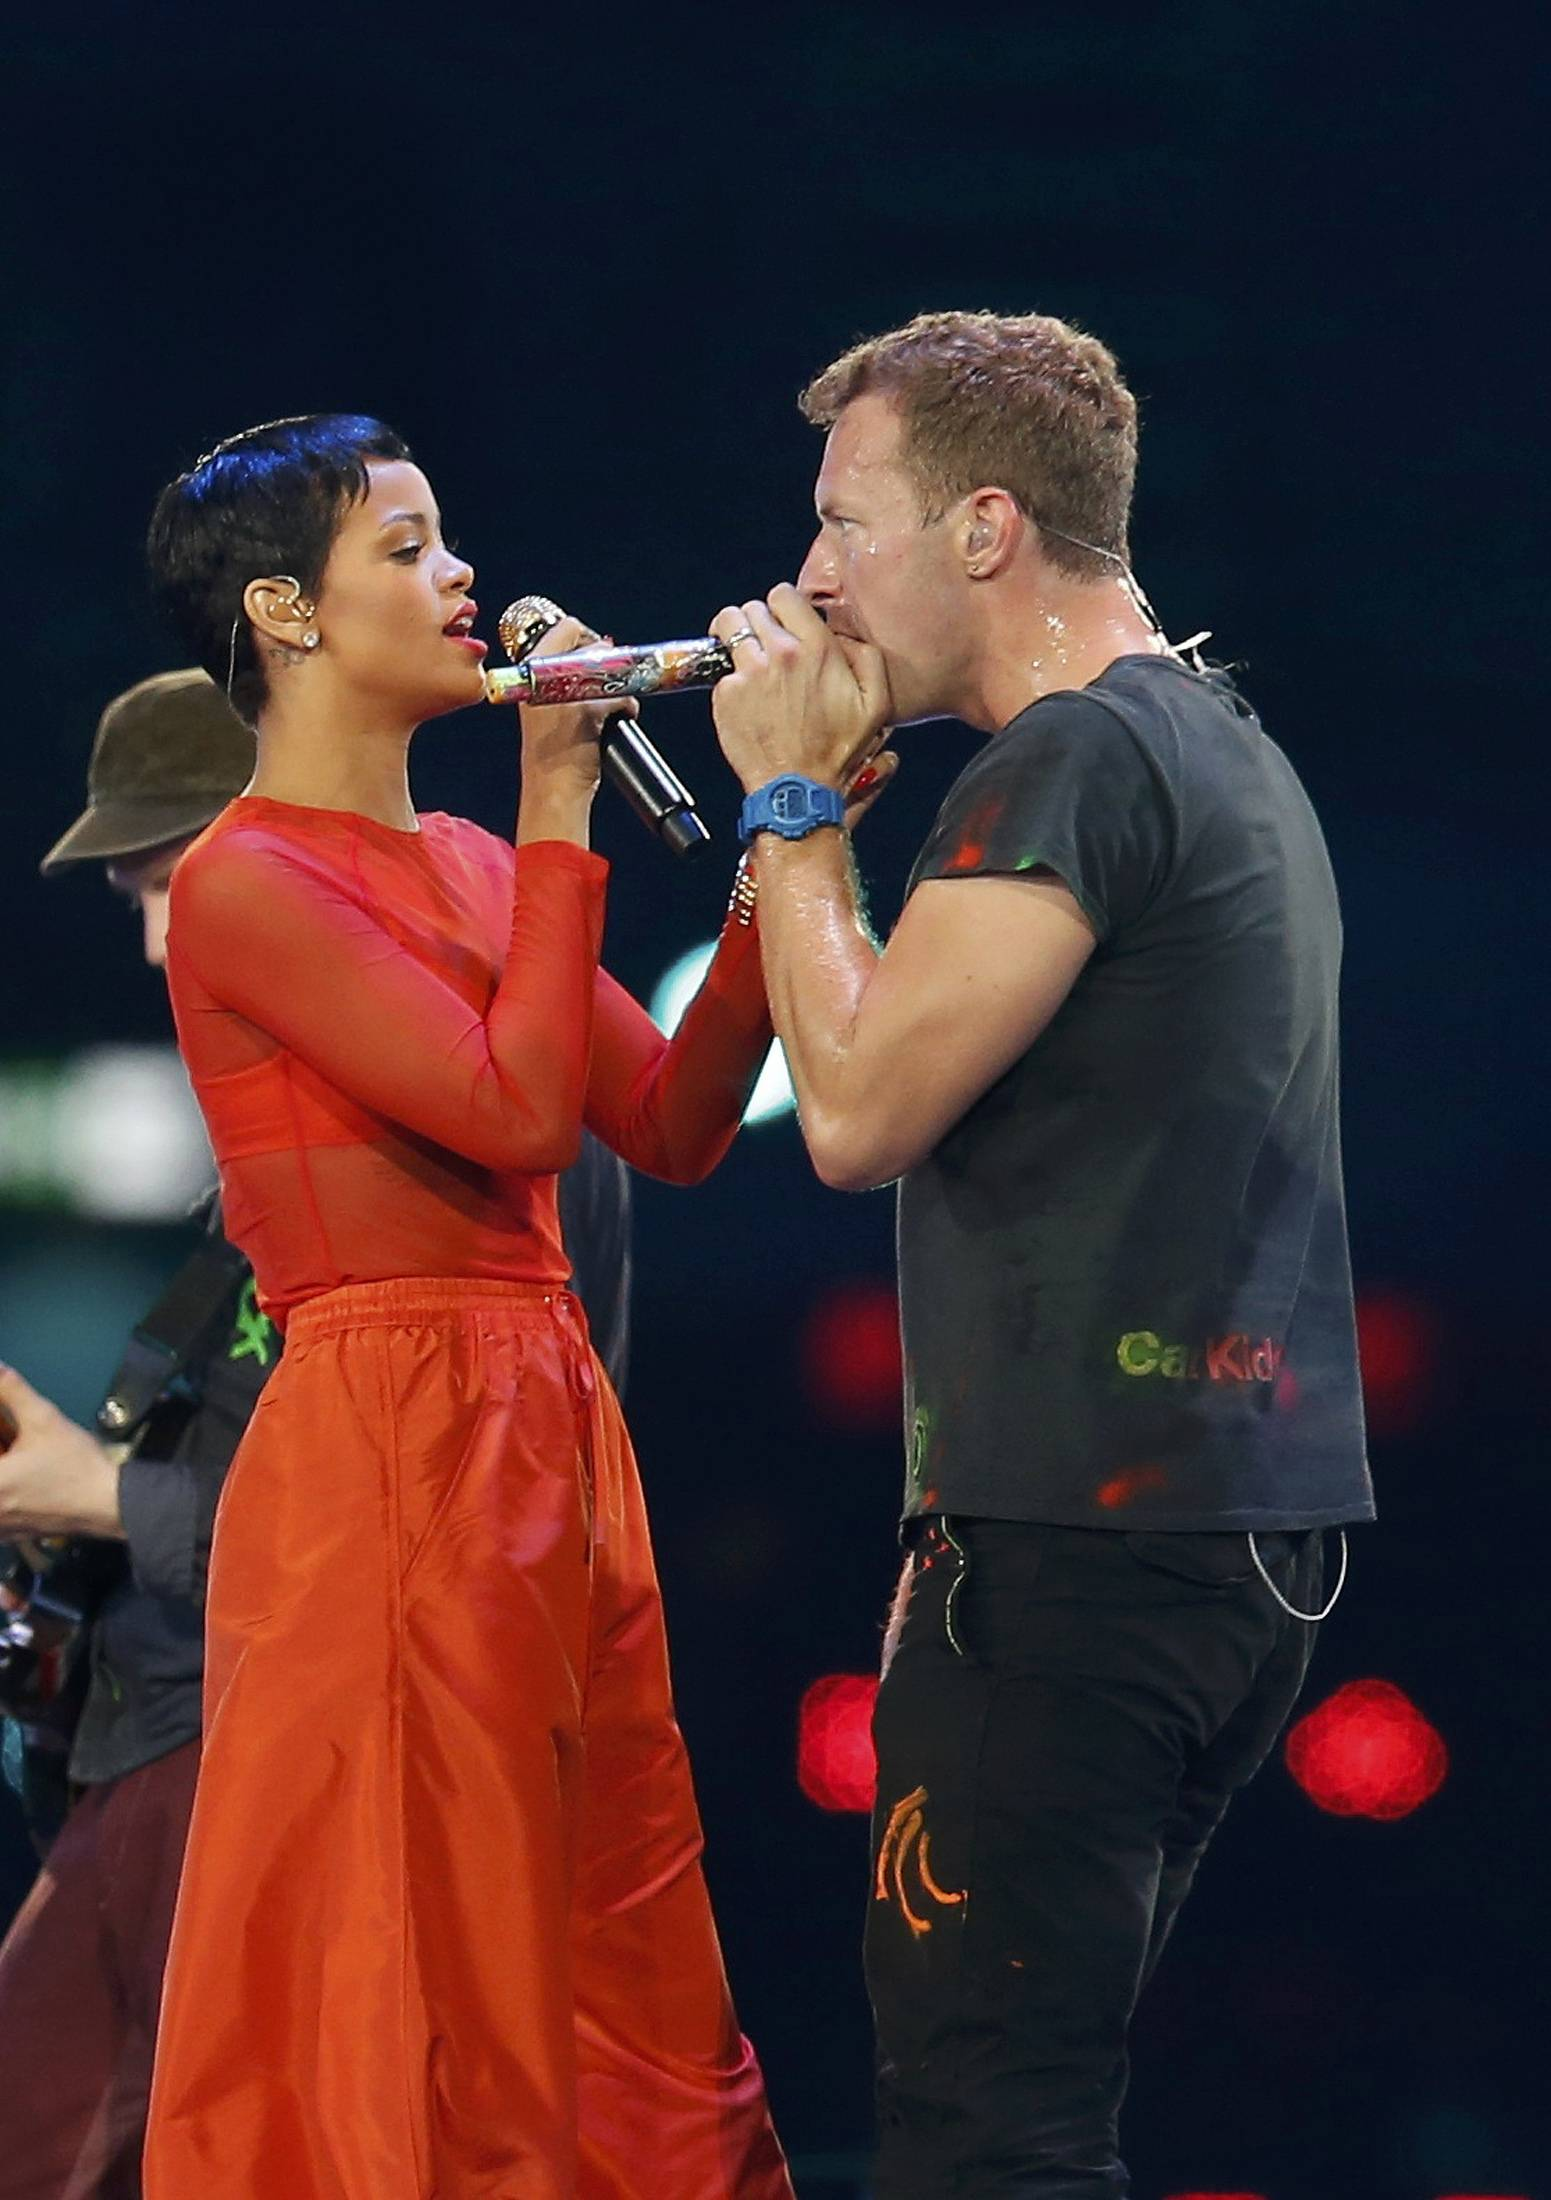 Singer Rihanna (L) and Chris Martin from Coldplay perform in the Olympic Stadium during the closing ceremony of the London 2012 Paralympic Games September 9, 2012.           REUTERS/Suzanne Plunkett (BRITAIN  - Tags: OLYMPICS SPORT ENTERTAINMENT)